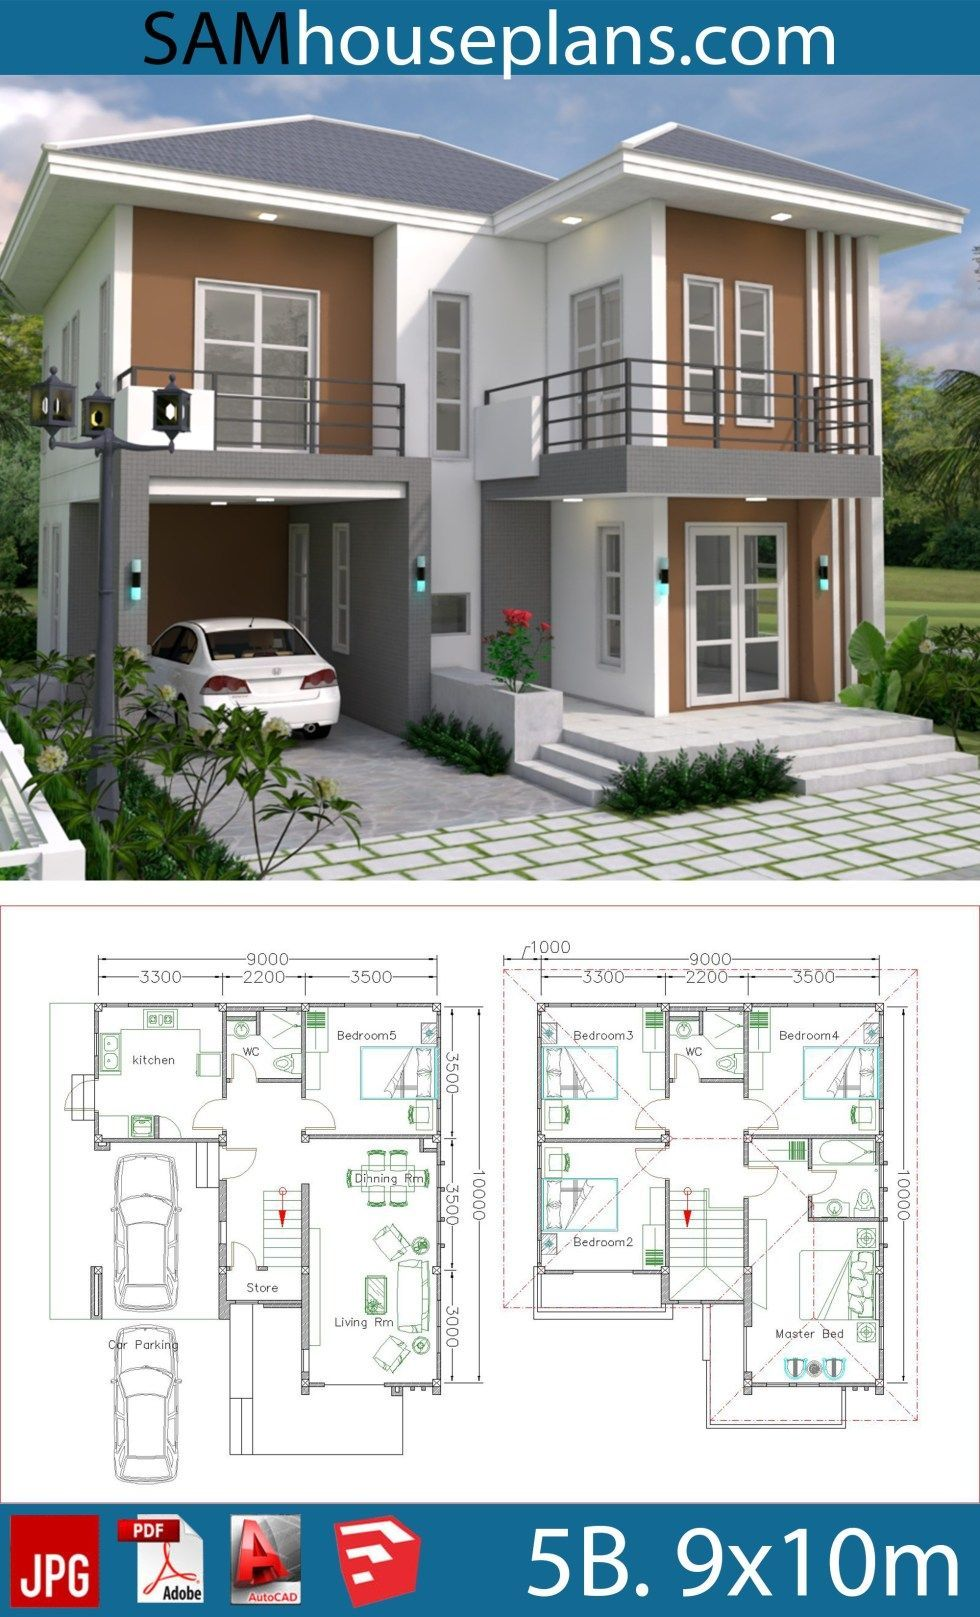 House Plans 9x10m With 5beds Sam House Plans Denah Rumah Arsitektur Rumah Rumah Indah